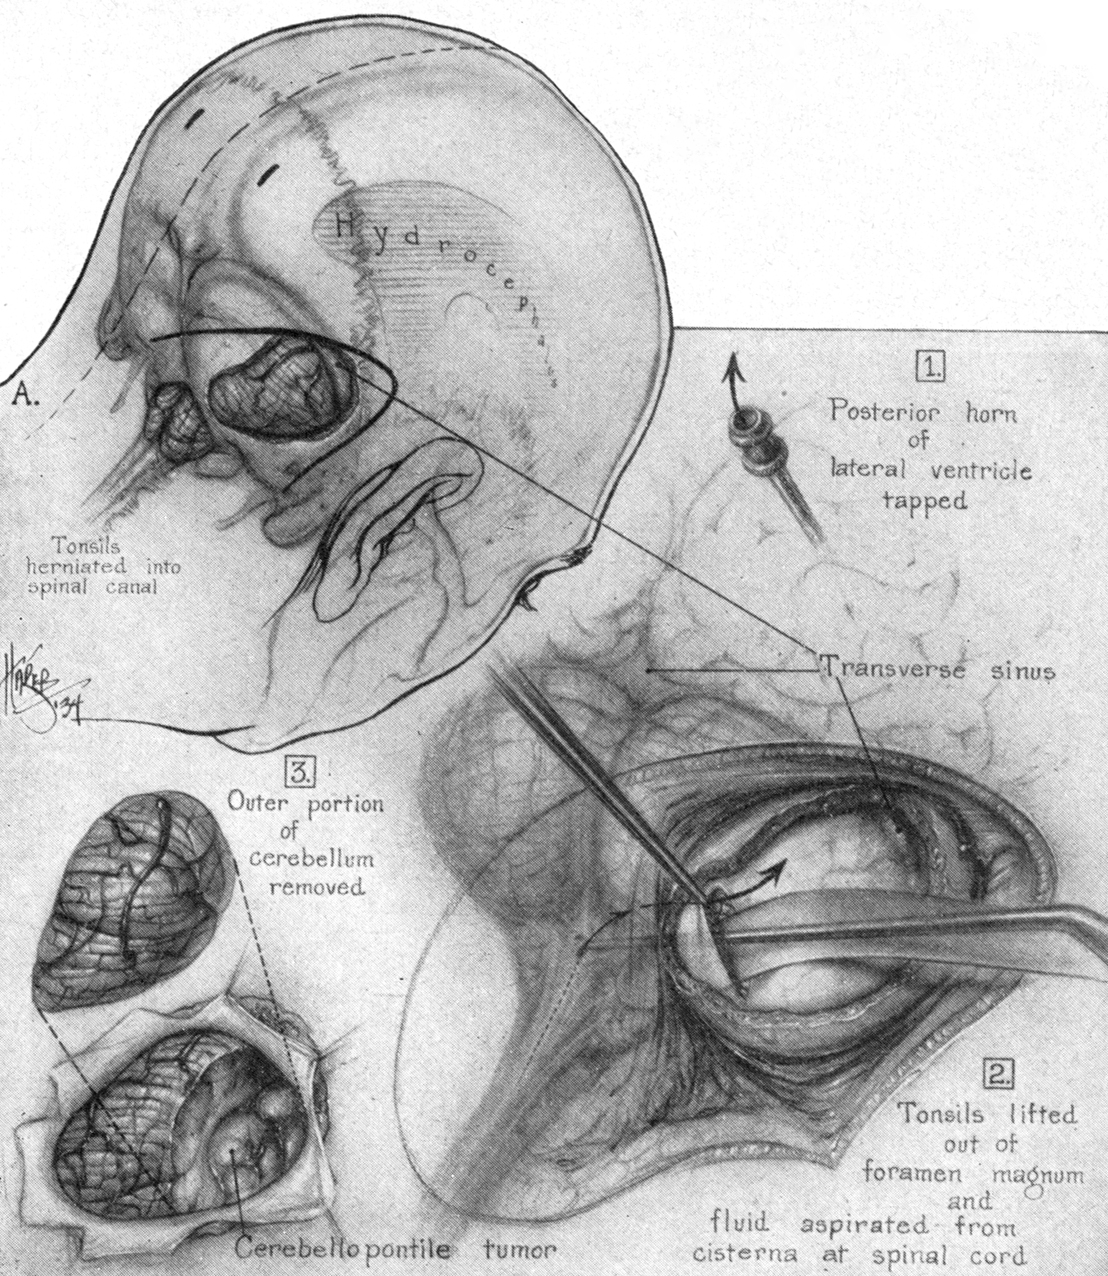 Figure 1: Walter Dandy demonstrated his stepwise technique for resection of acoustic neuromas: 1) relief of intracranial tension through the use of ventriculostomy, 2) further cerebrospinal fluid drainage through the cisterna magna upon dural opening, and 3) final exposure of the tumor via resection of the lateral cerebellum (Dandy WE.  The Brain . Hagerstown, MD: WF Prior Company, 1966).